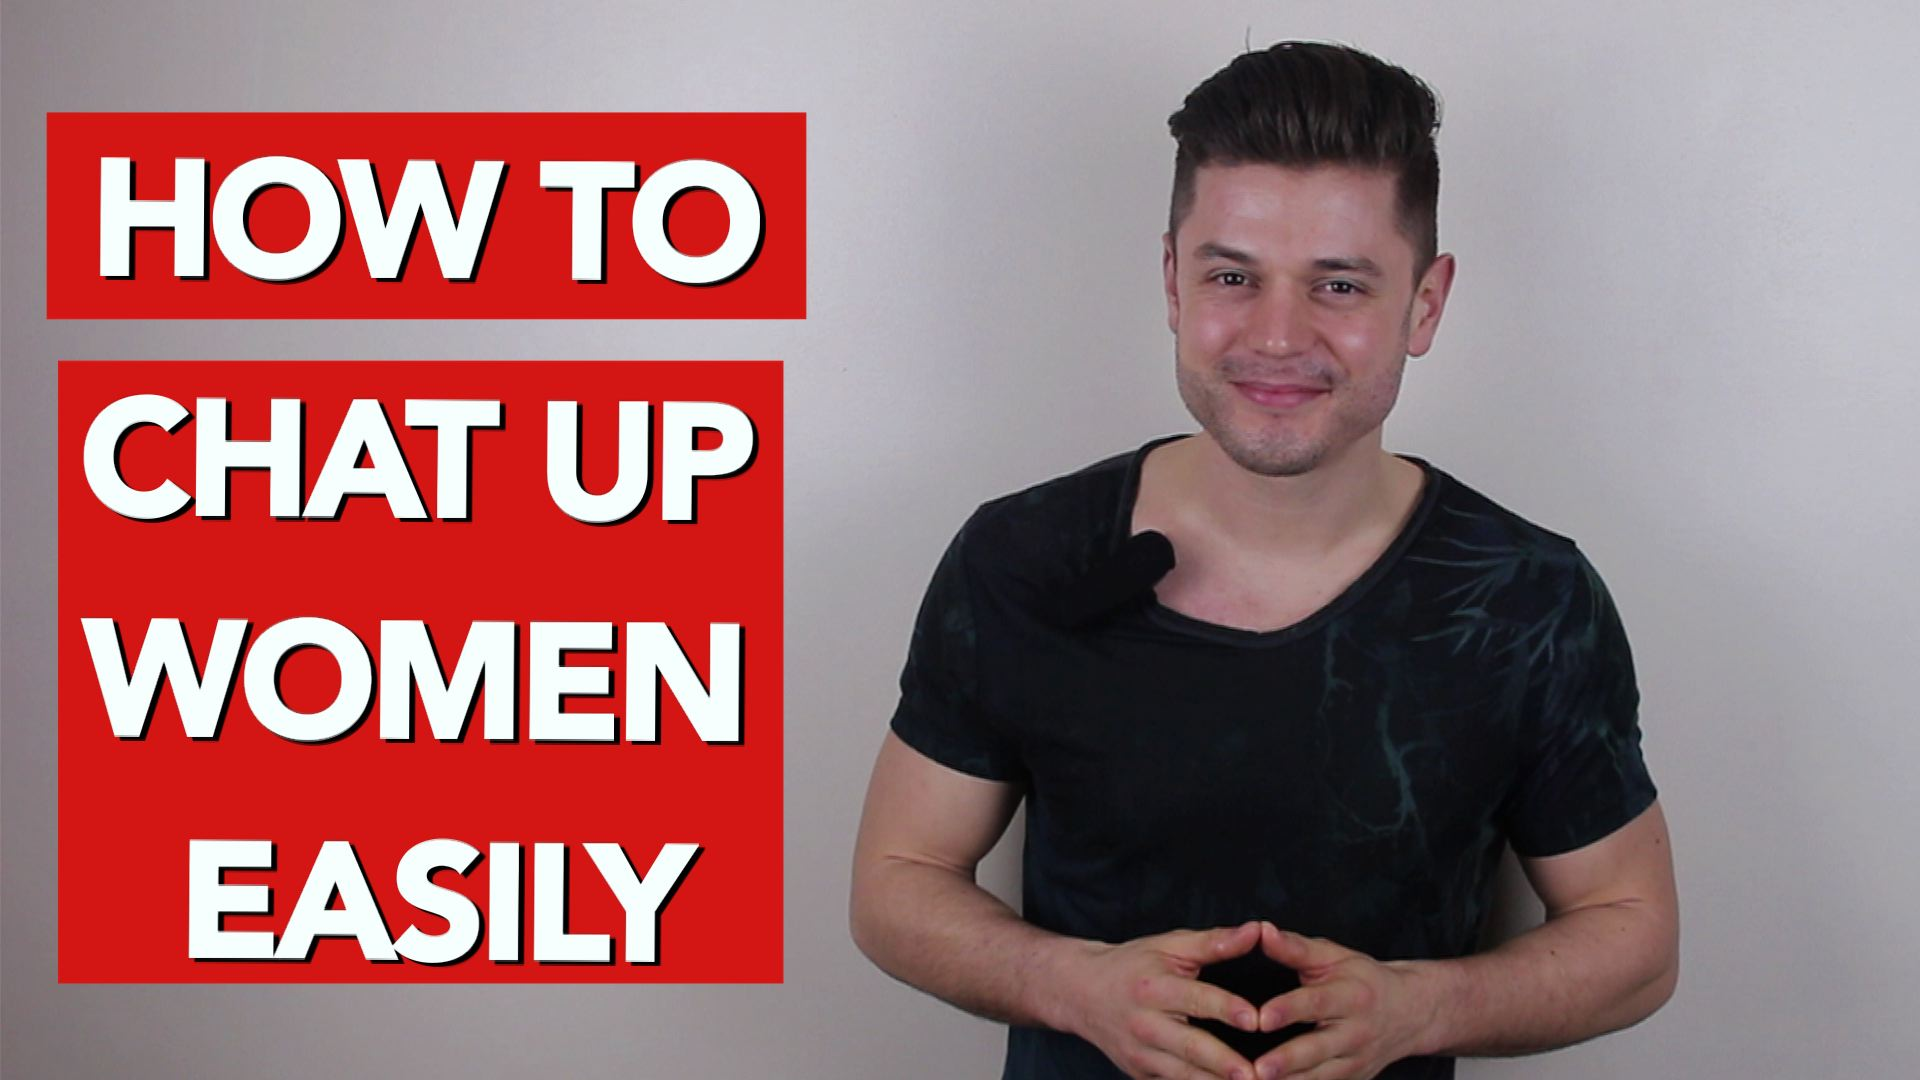 How to chat up women easily